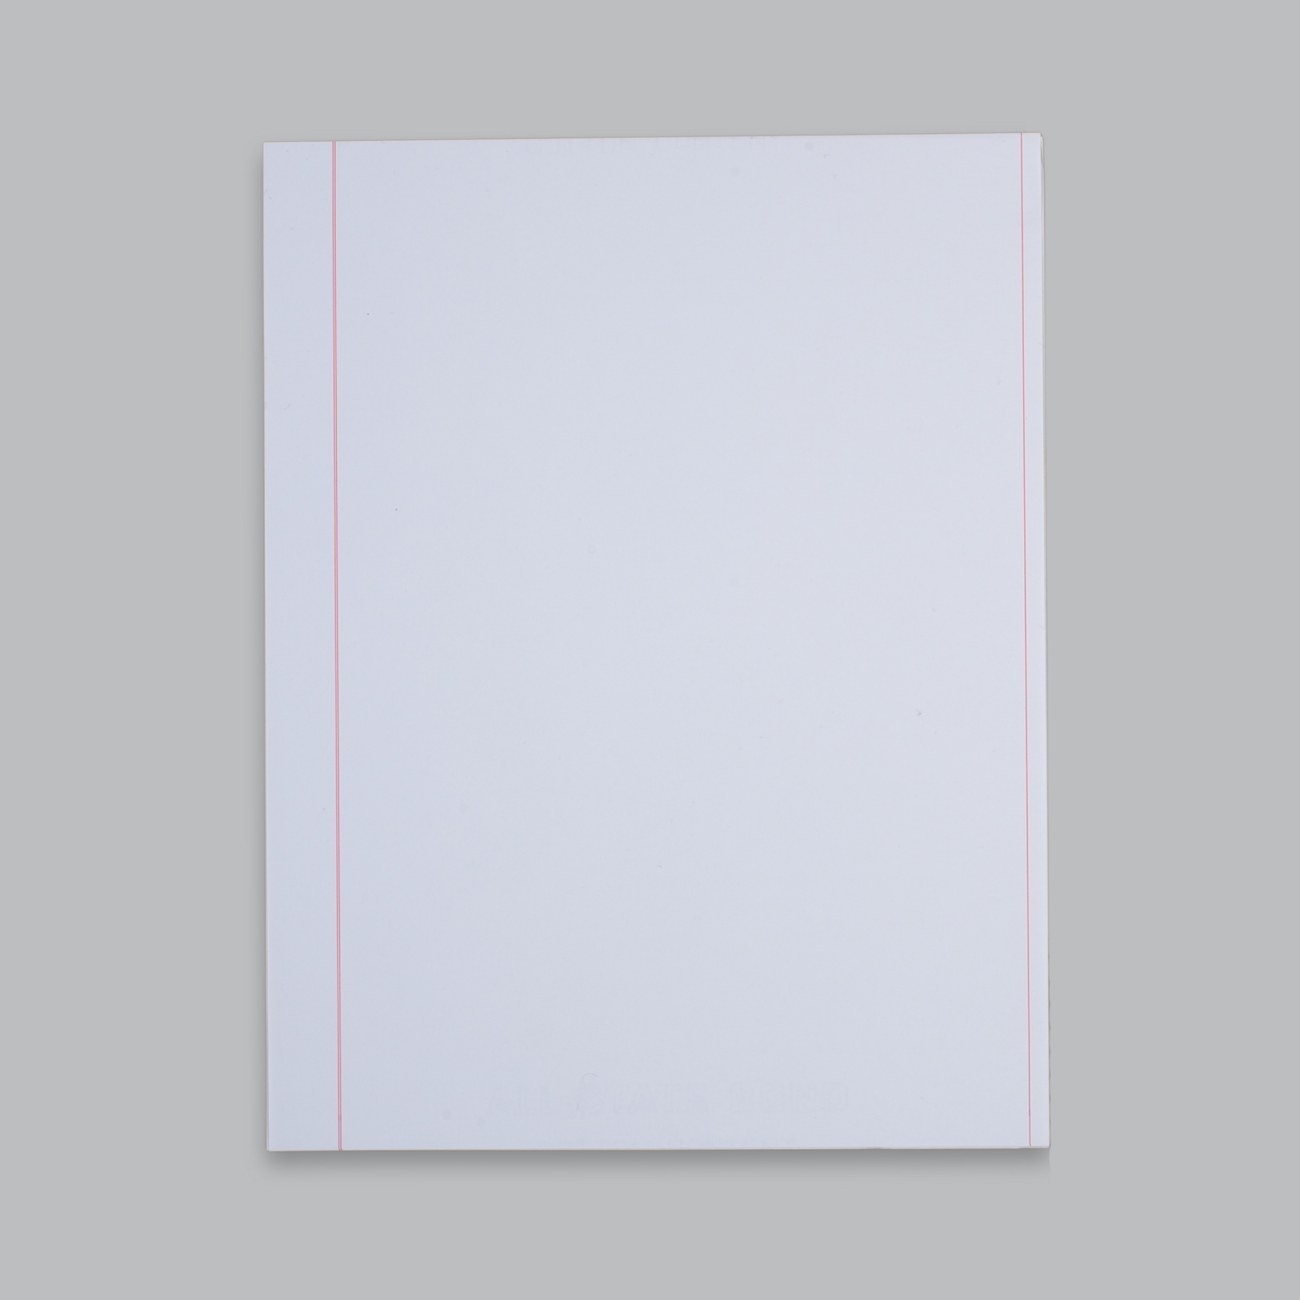 "Perfect Image Bond Ruled Paper 8 1/2"" x 11"", Red Standard Ruled, Bright White, 20 lb. Perfect Image Paper, 500/RM"